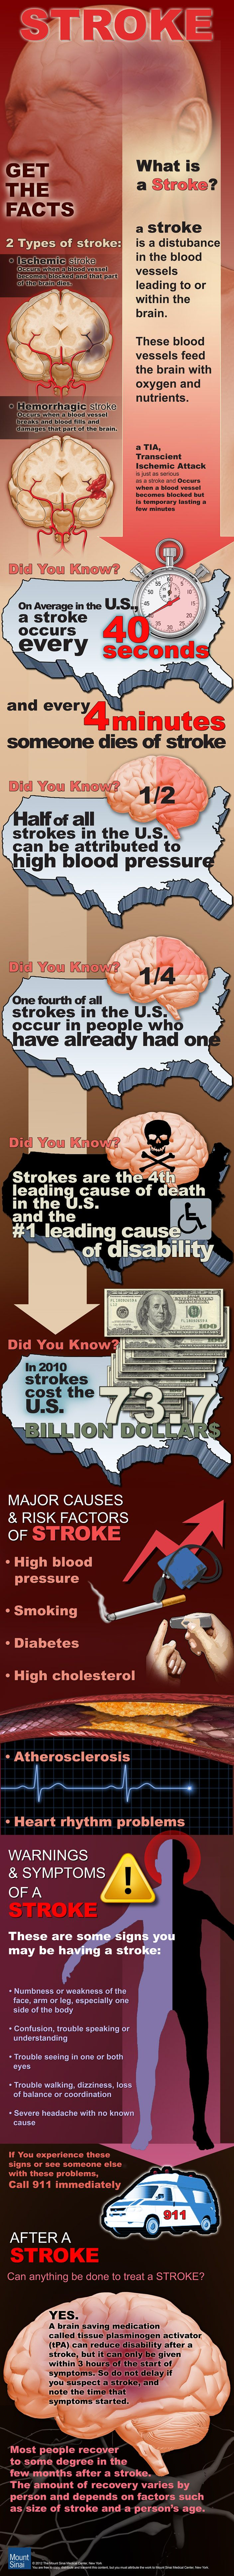 Stroke infographic - Get the Facts